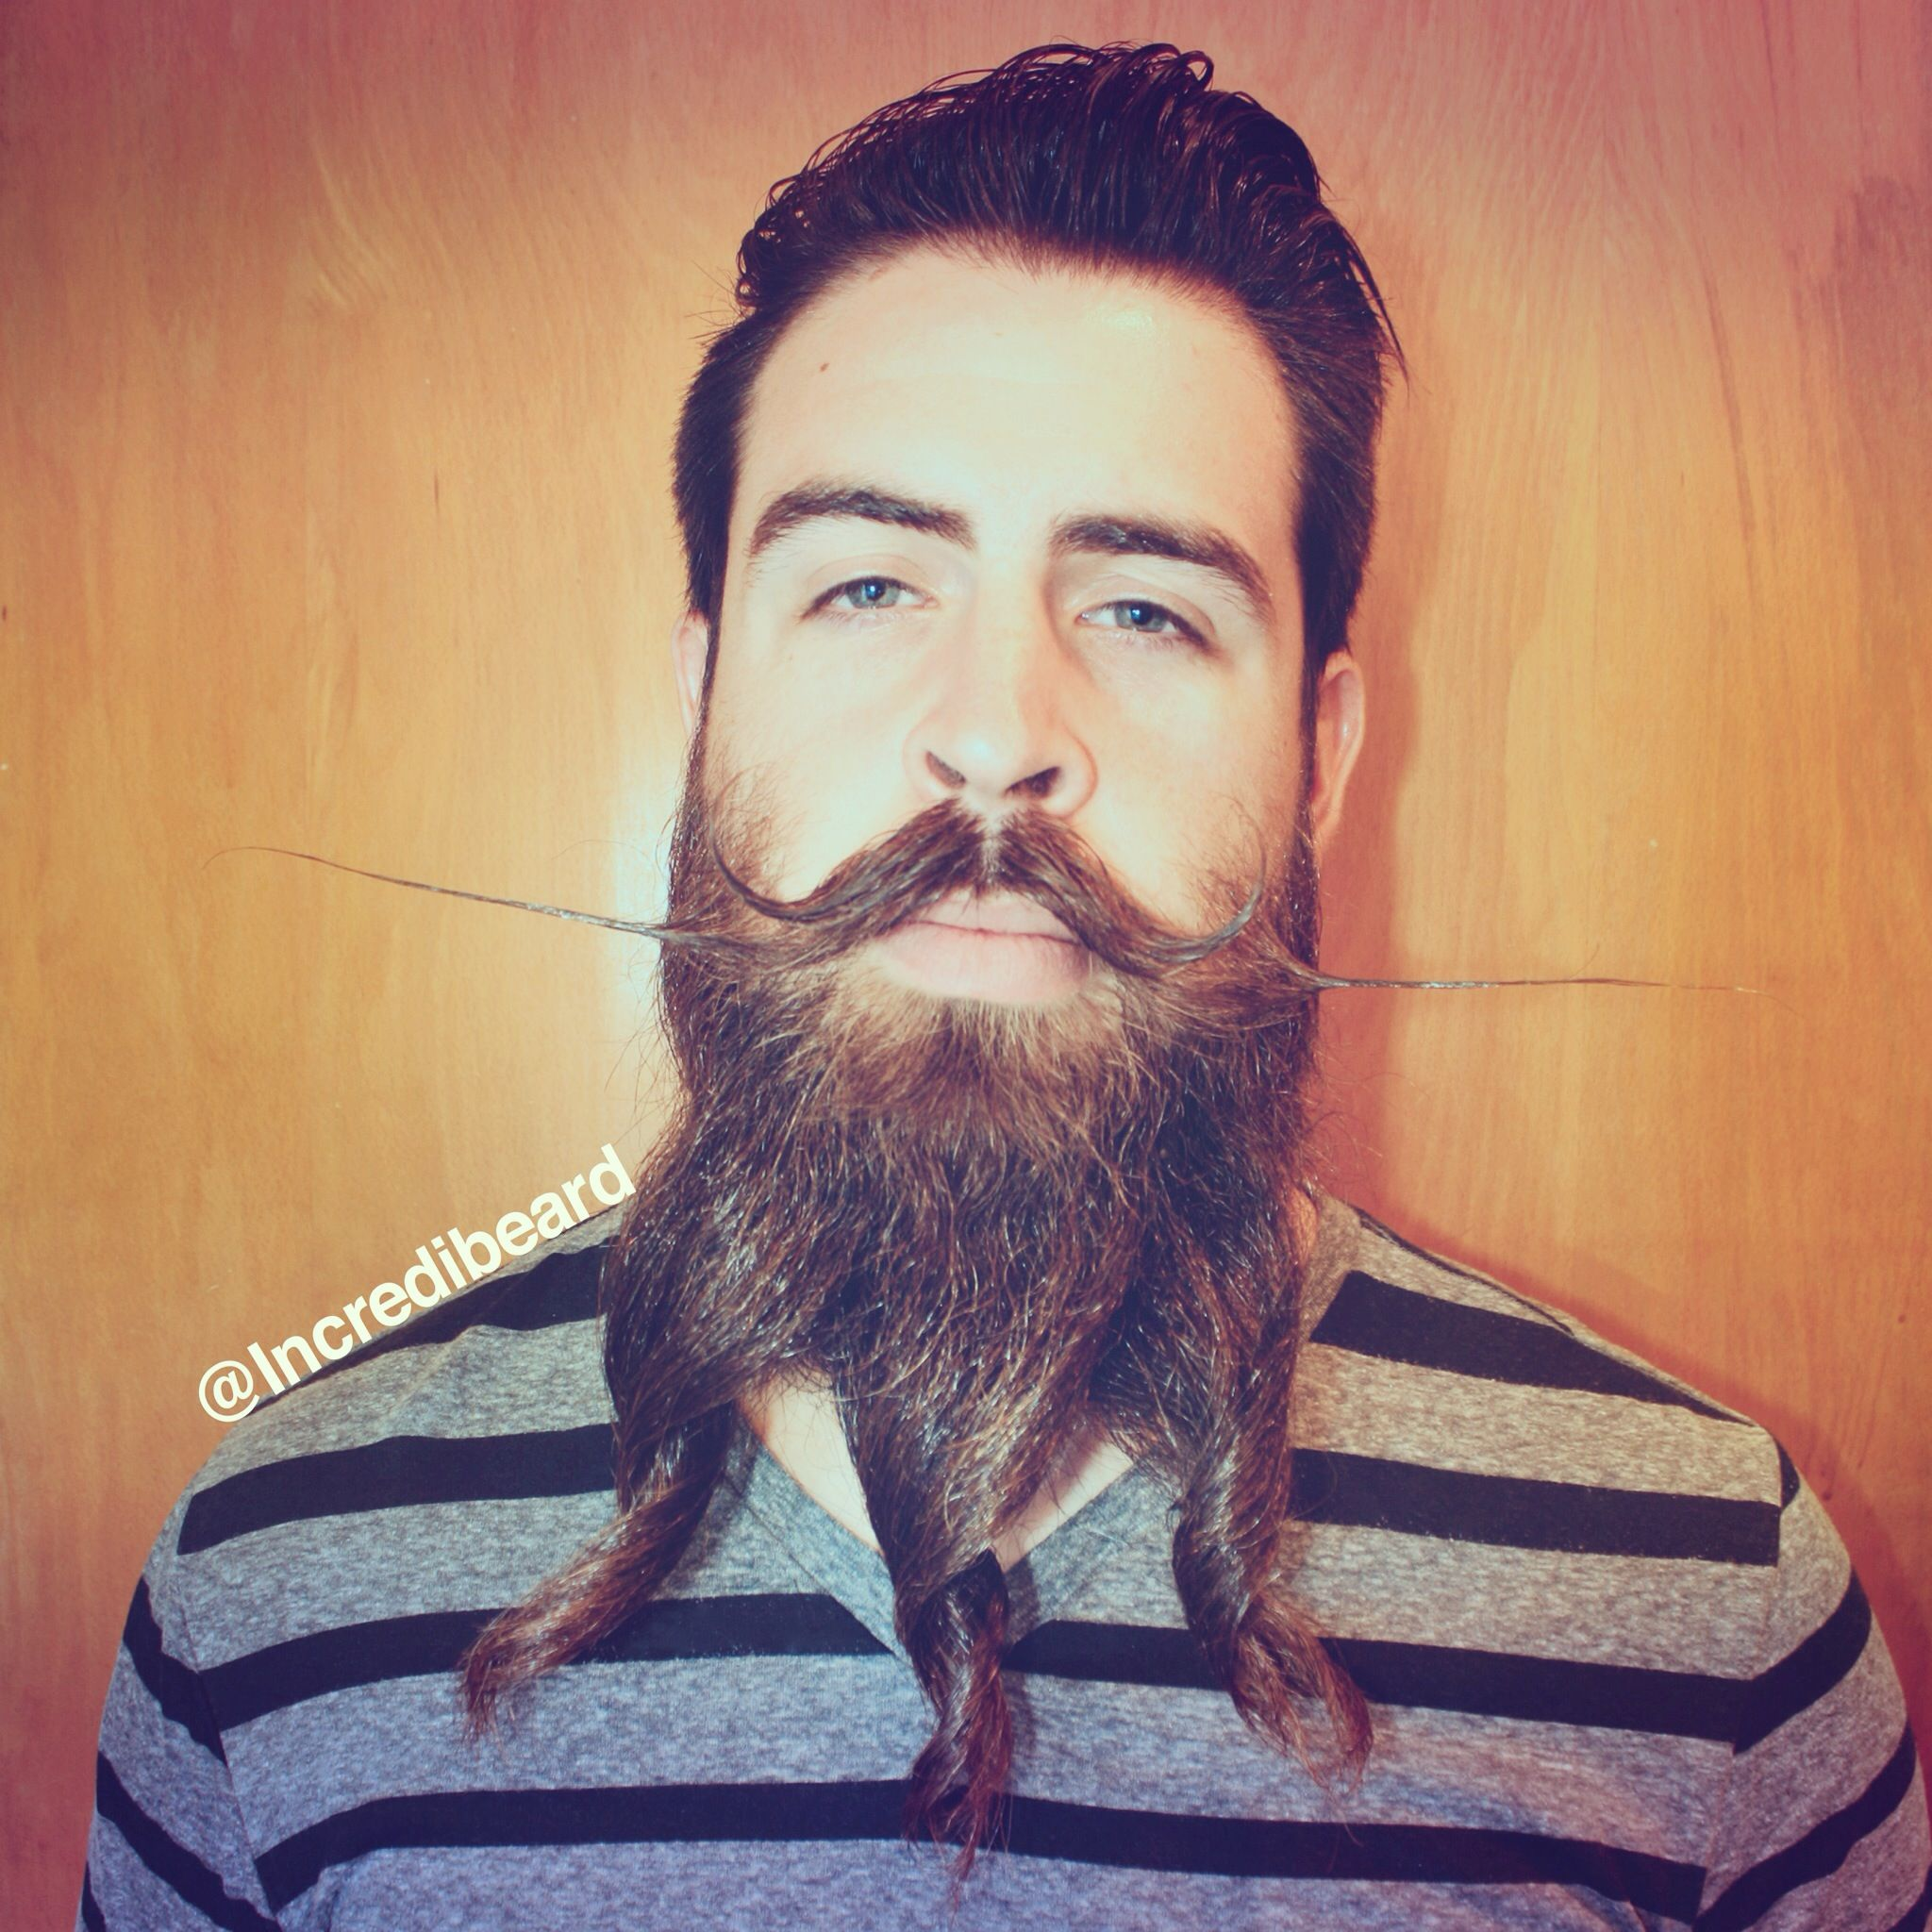 The Dali Tornado Beard Style Incredibeard Pinterest Beard - Mr incredibeard really coolest beard ever seen